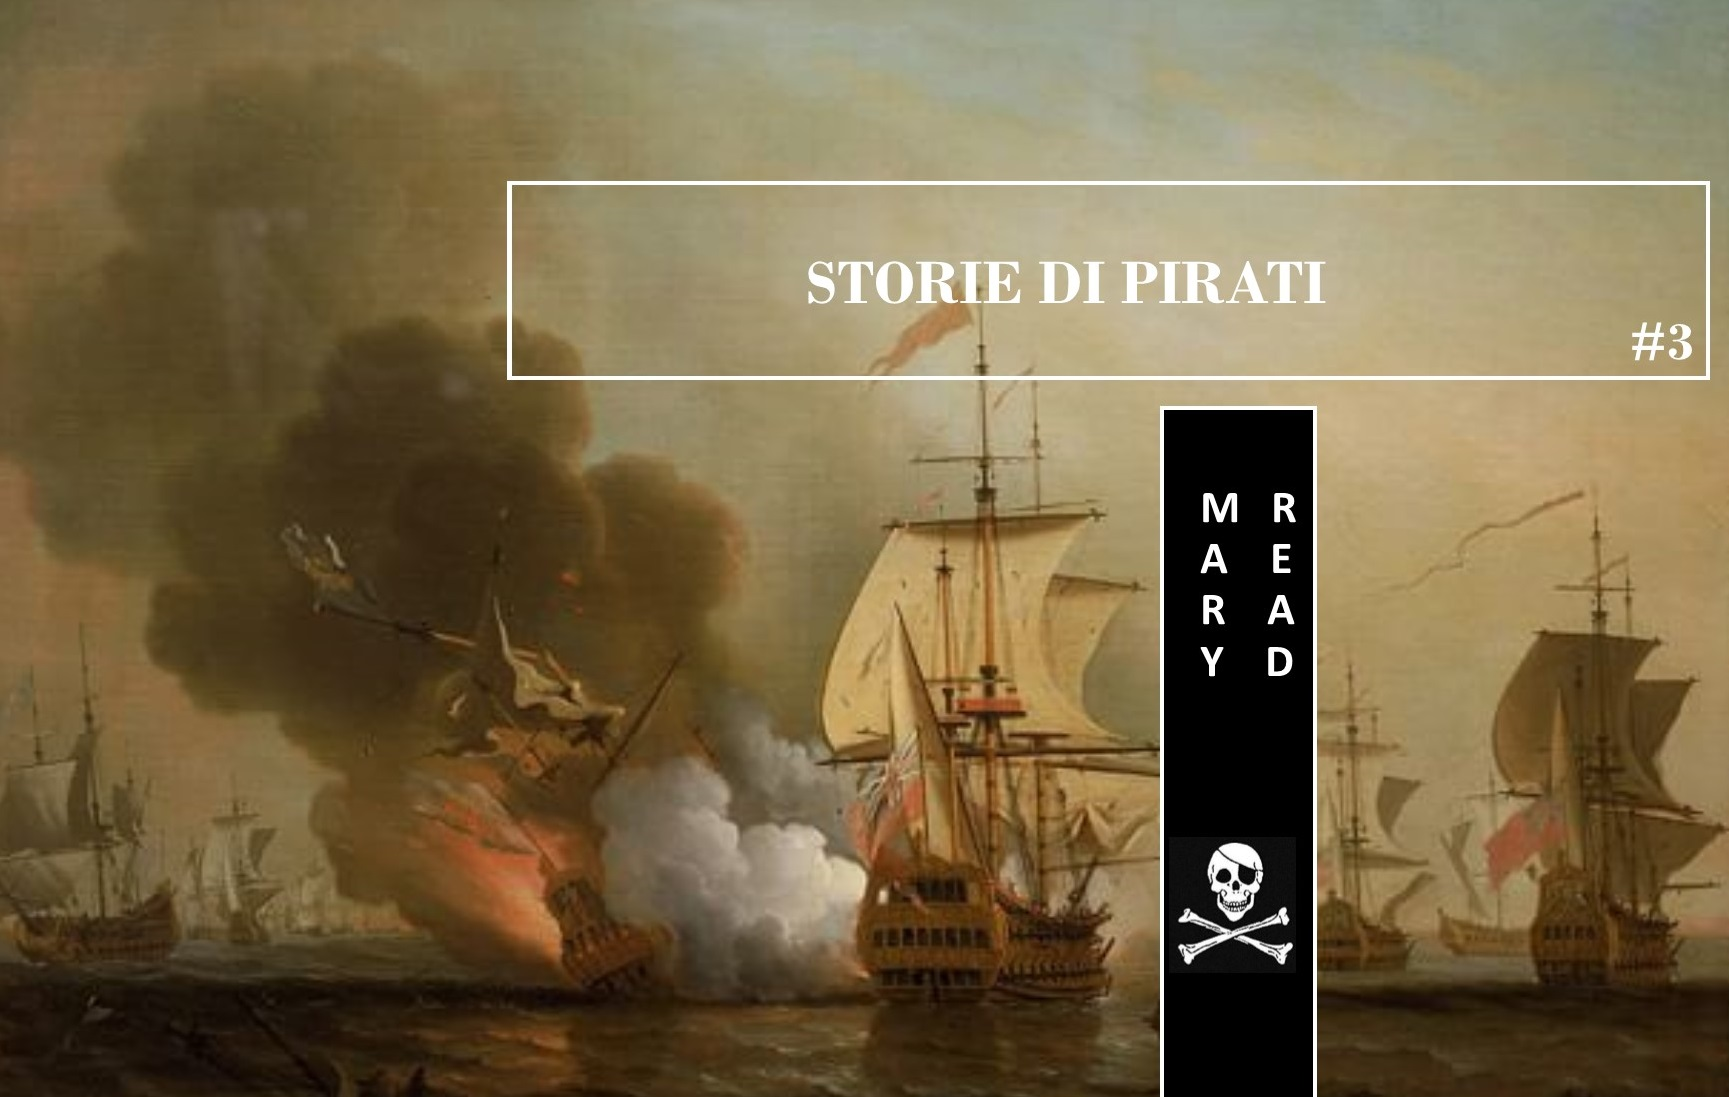 Storie di Pirati #3: Mary Read, la celebre donna pirata travestita da uomo